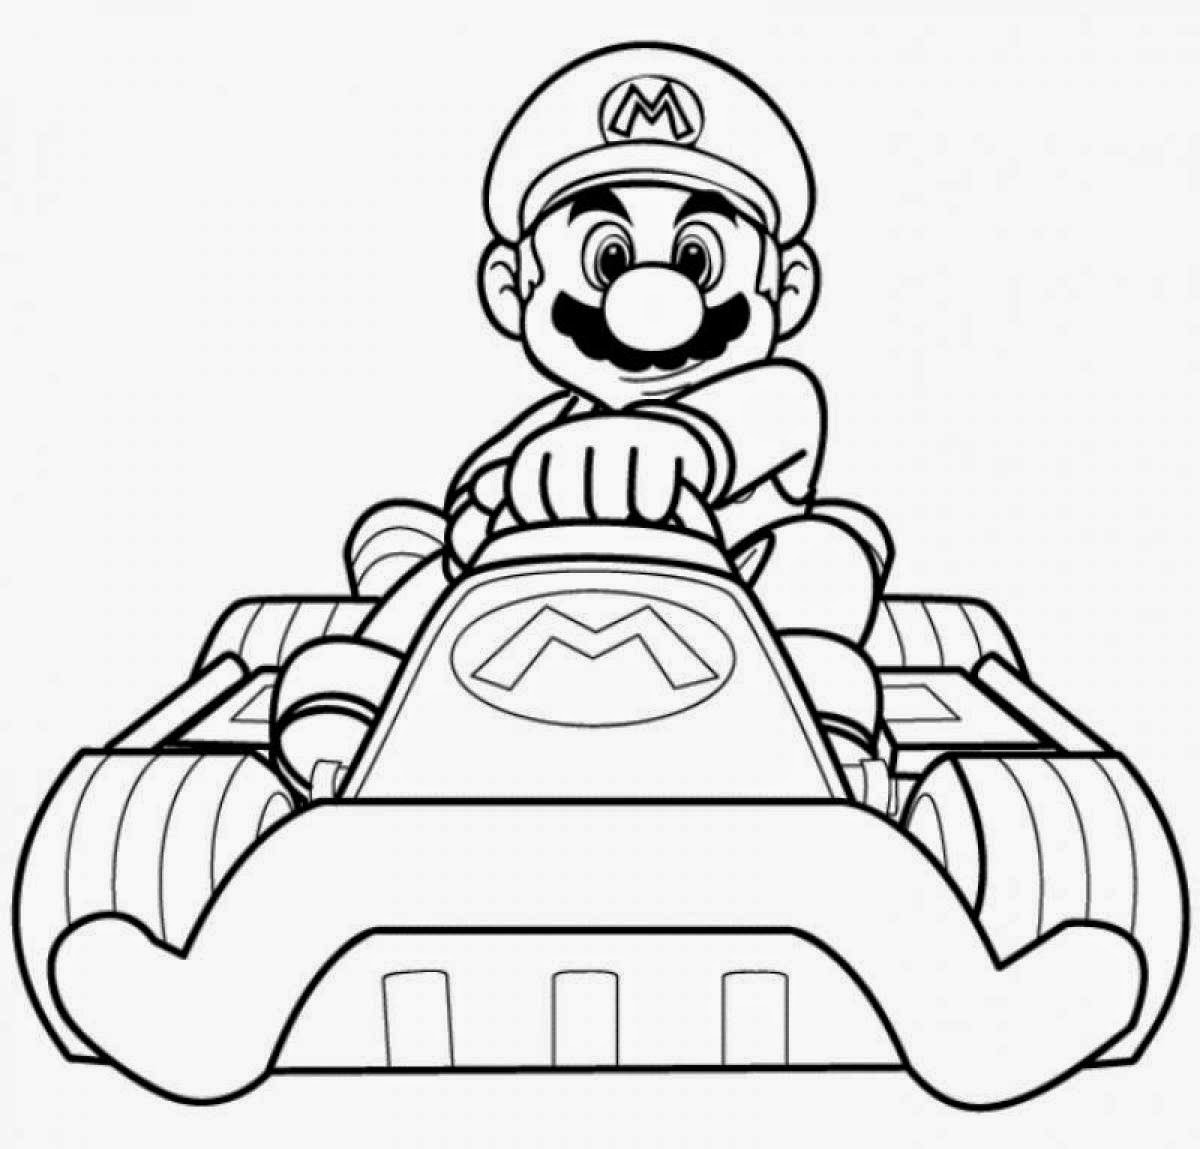 coloring pages mario color page mycoloring free printable